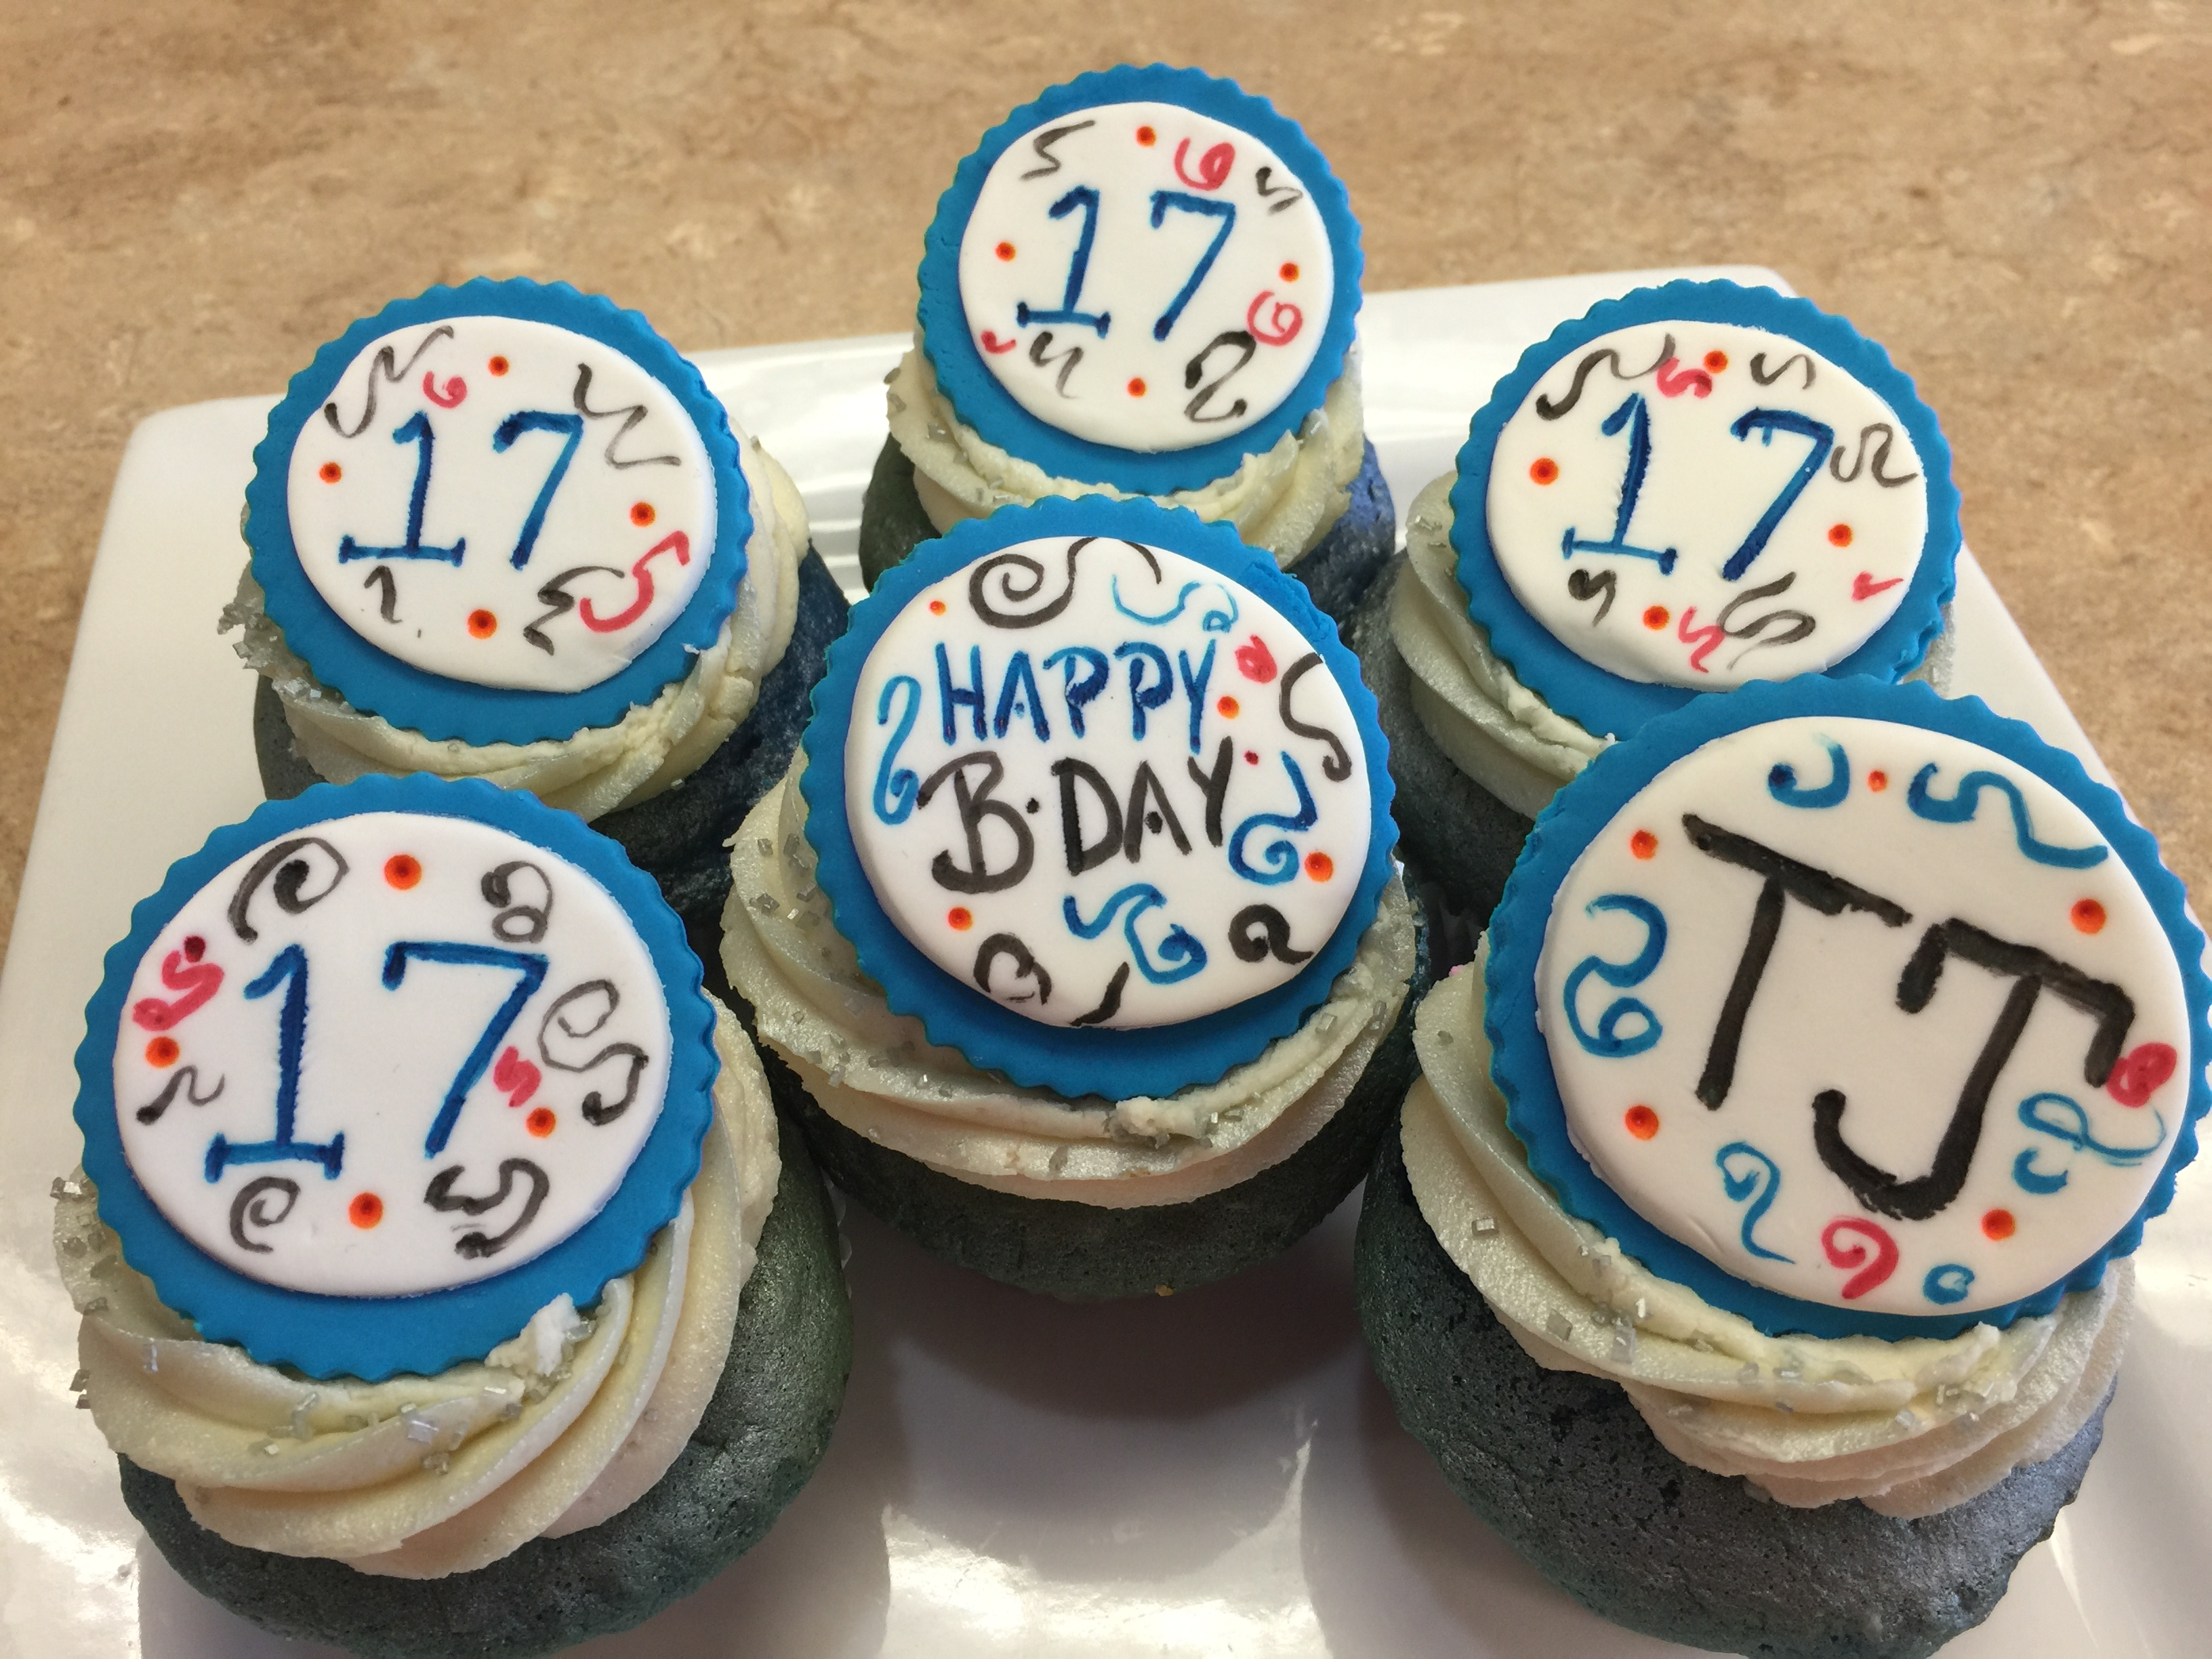 Birthdiay Cupcakes